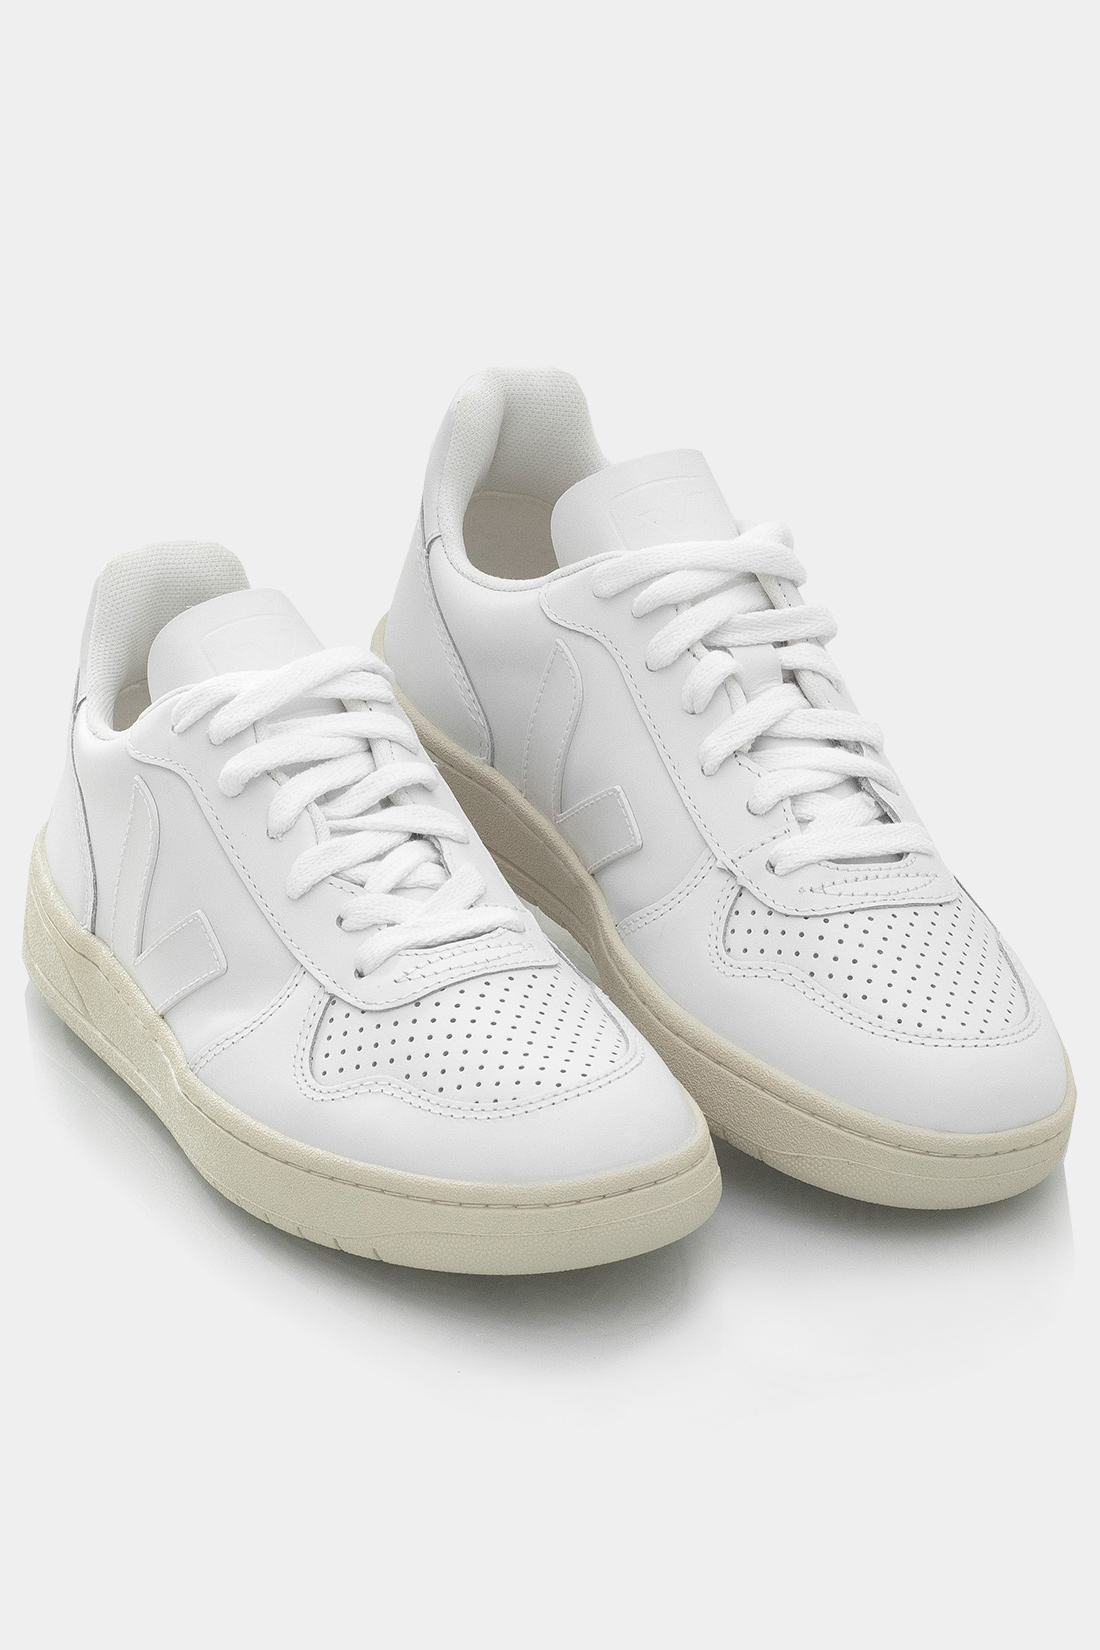 Tenis Casual Masc Vert Leather Couro Extra